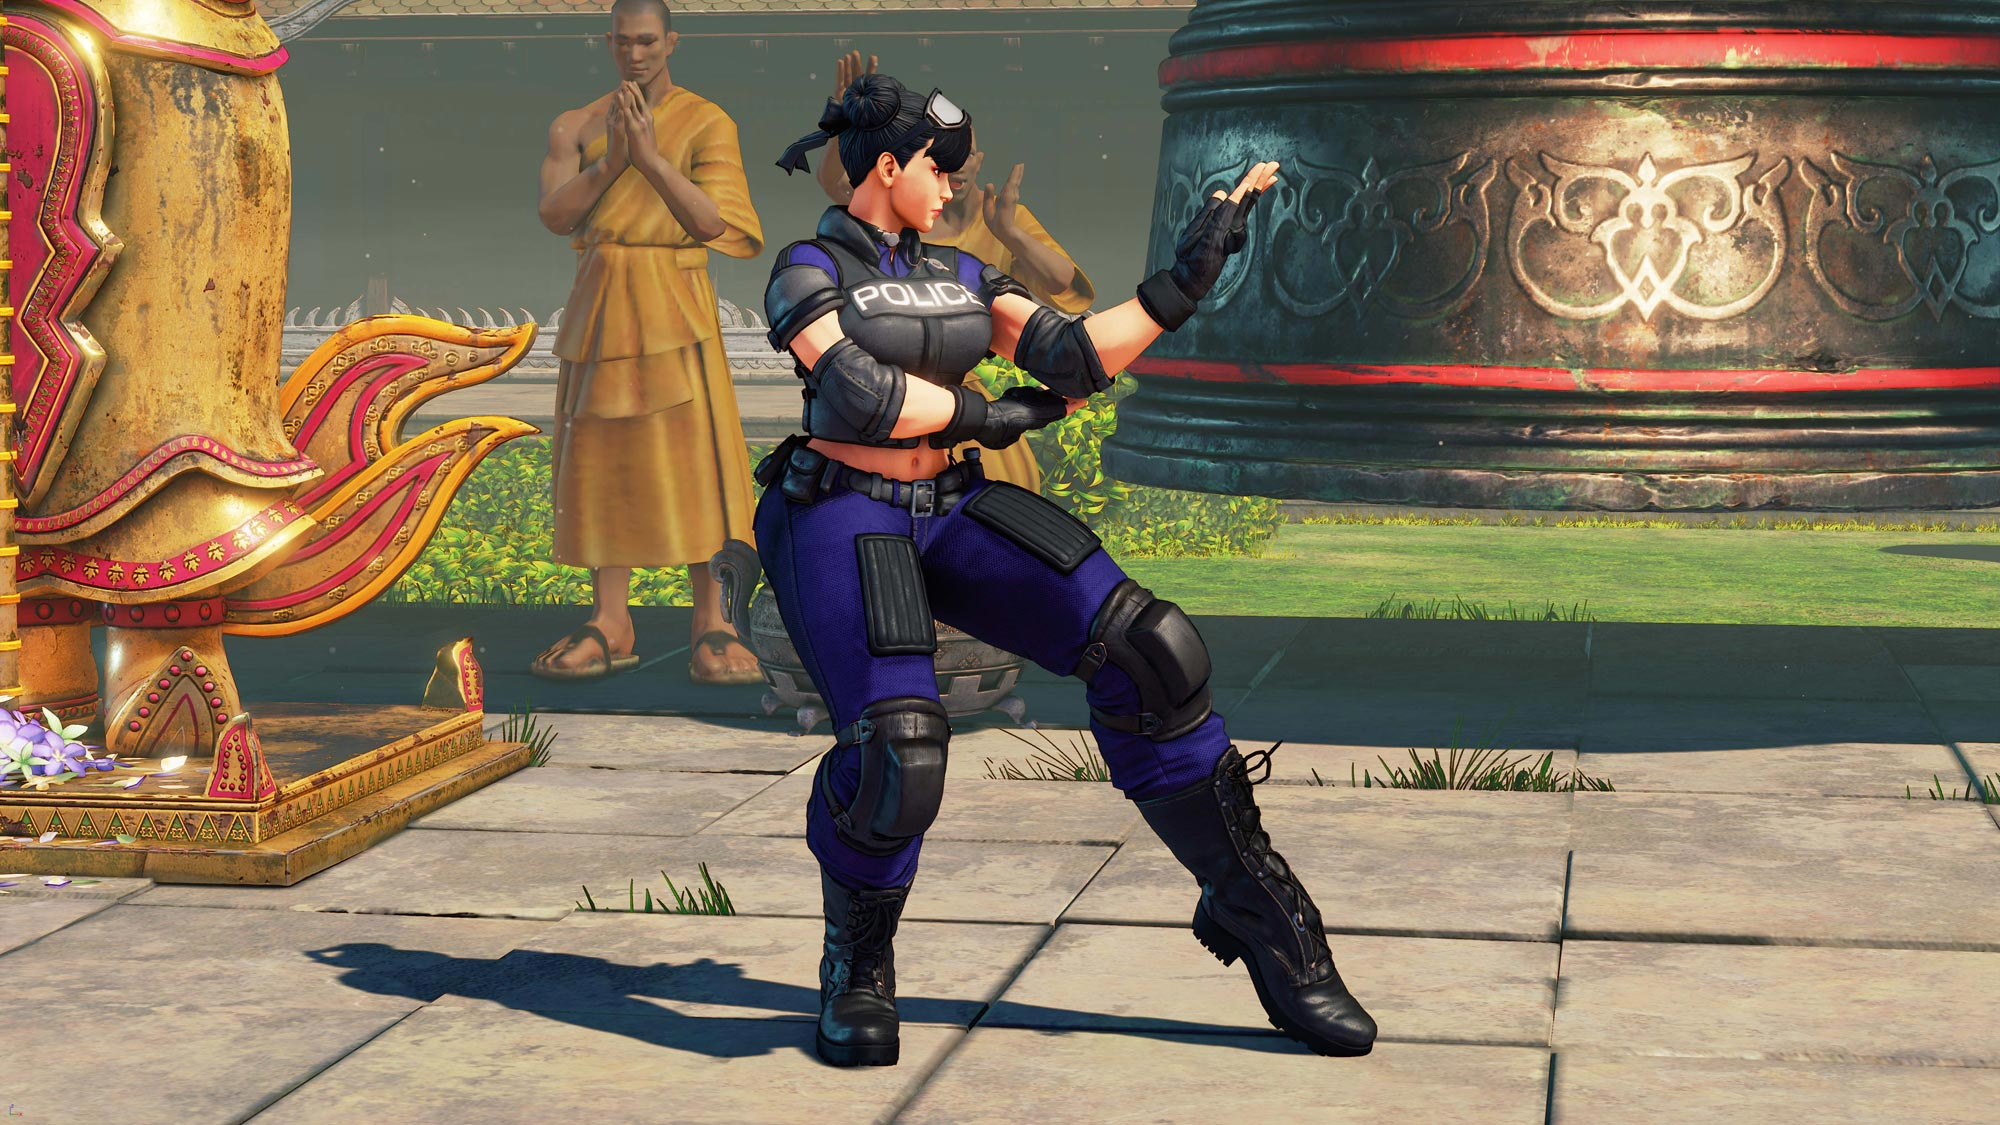 New Street Fighter 5 costumes 10 out of 10 image gallery